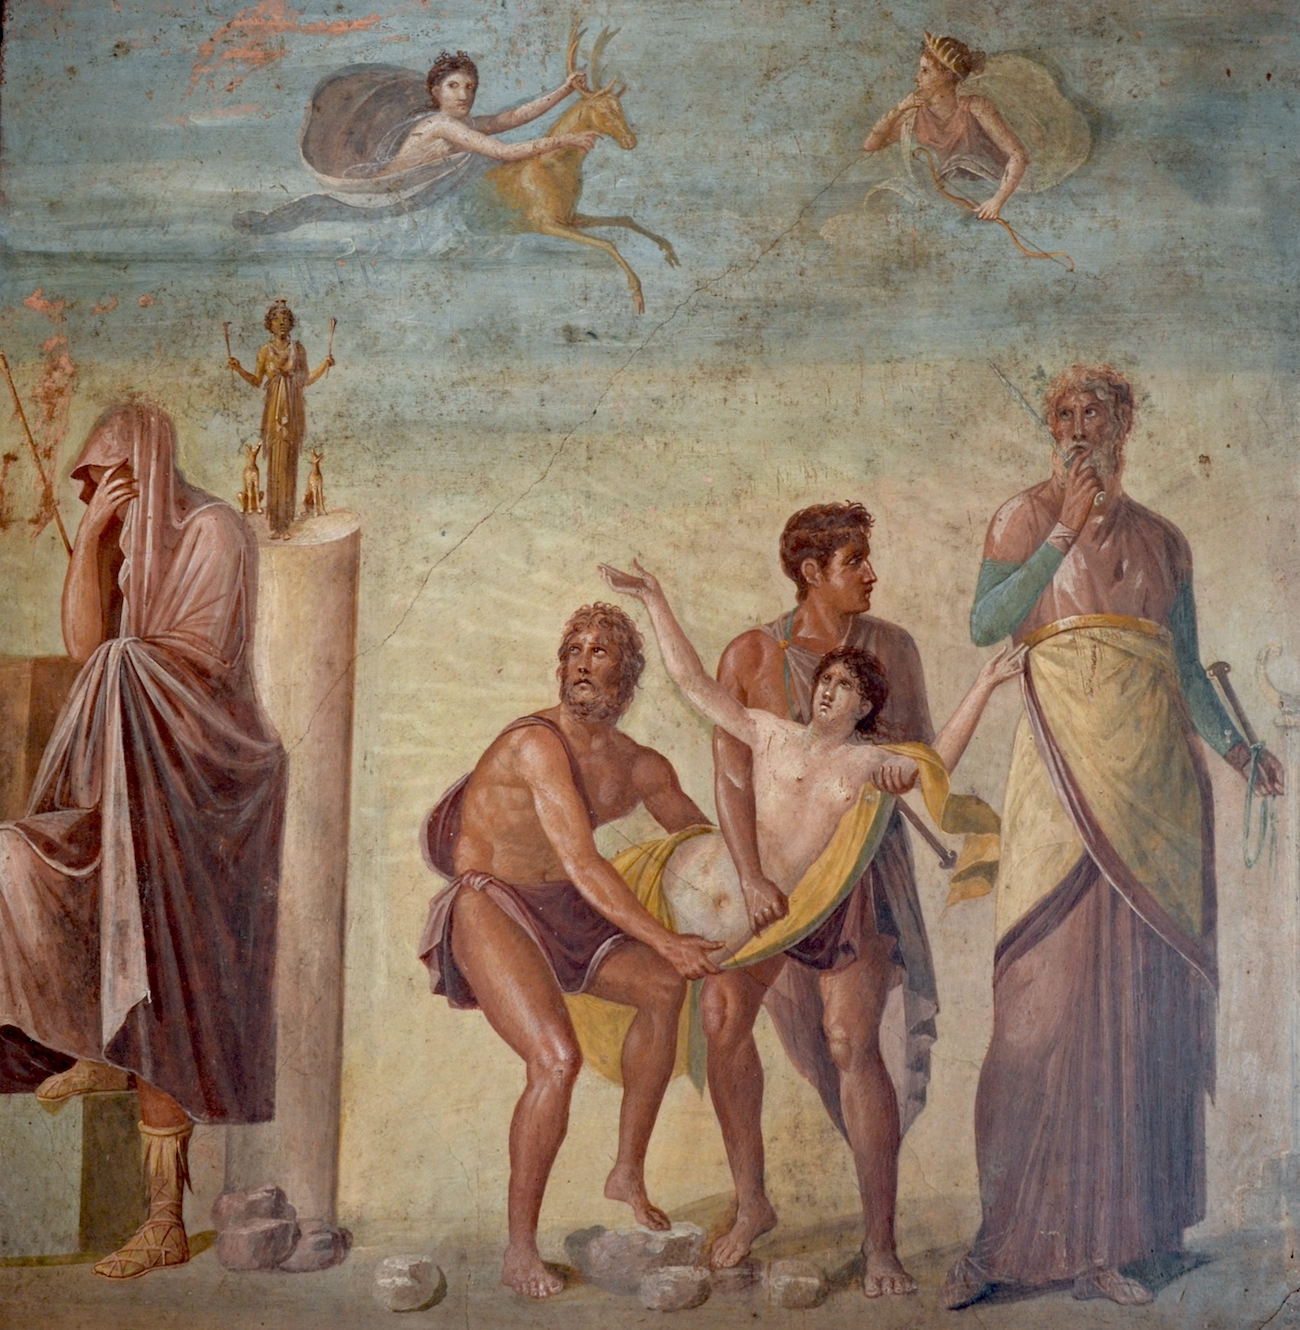 Wall painting in blues and reds showing a young nude woman being carried against her will by two women, while her father turns away and weeps